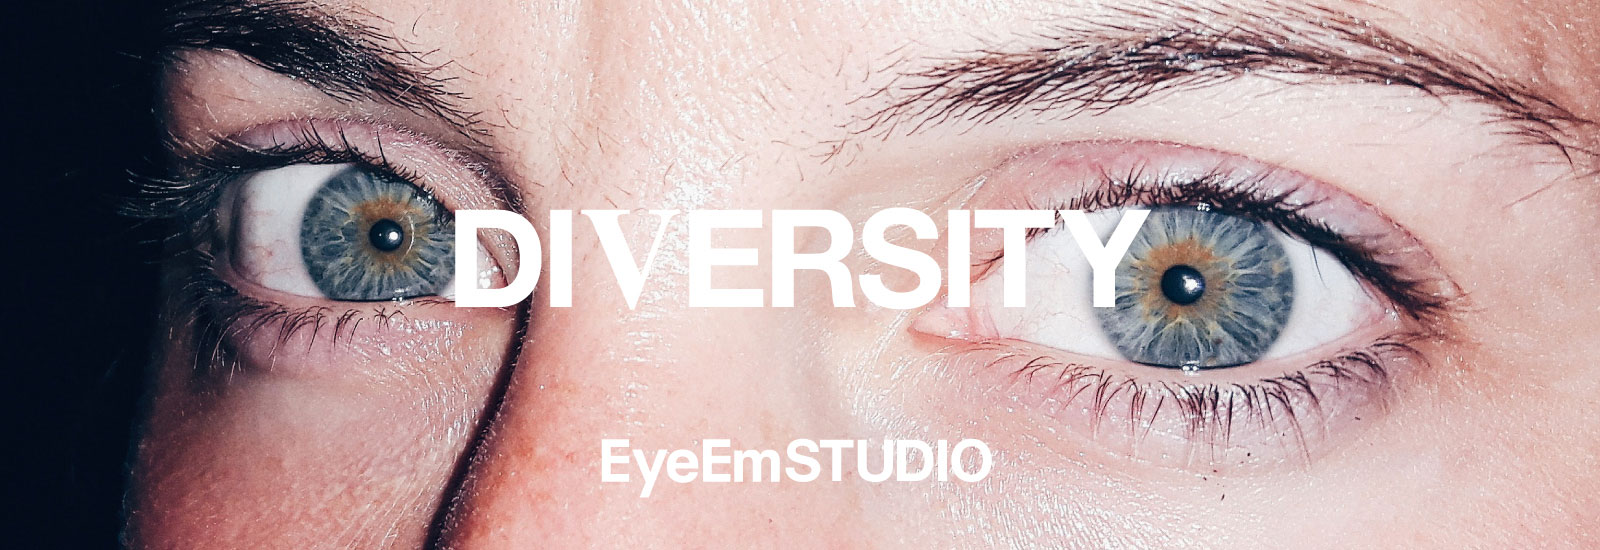 EyeEm Studio | EyeEm Diversity: Magazine Vol. V Launch Party. © Photo by @koustoz